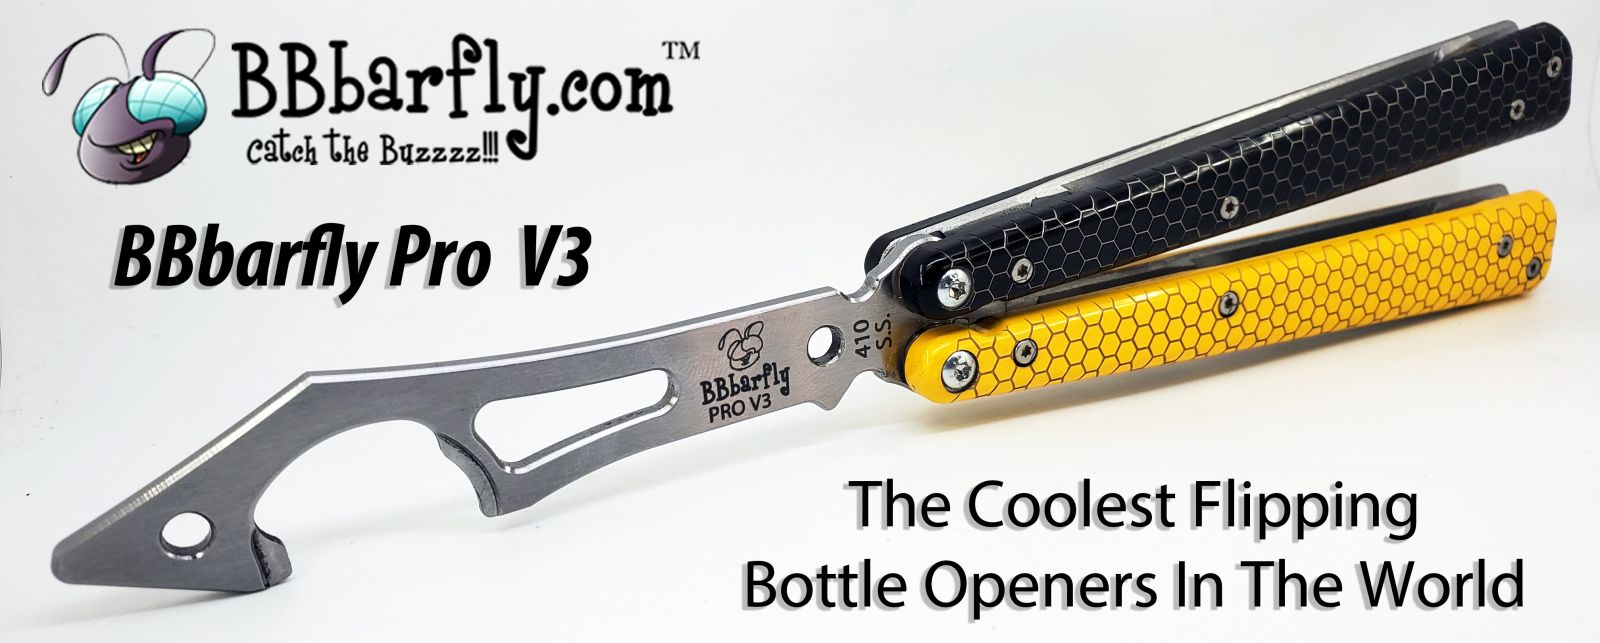 Knife Style Black and Yellow Handles Pro V3